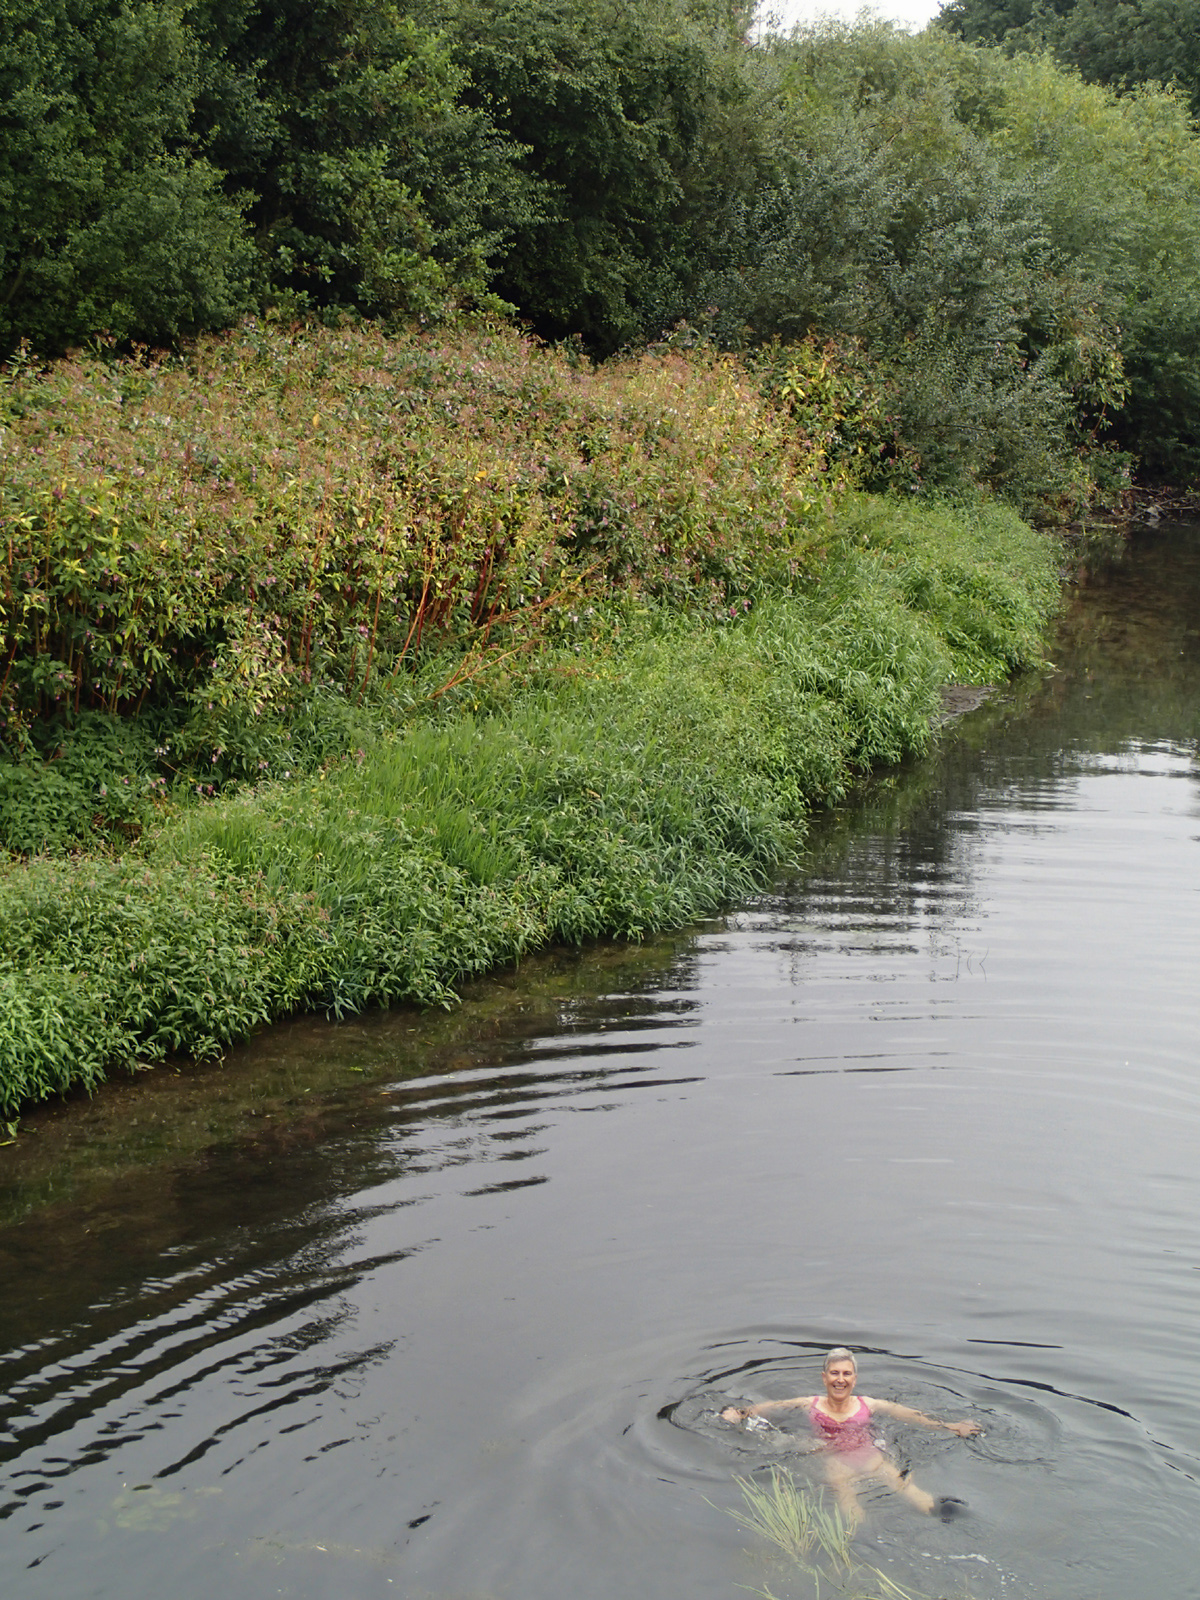 smiling swimmer floating on back, in front of bank of vegetation – pink Himalayan balsam and trees behind